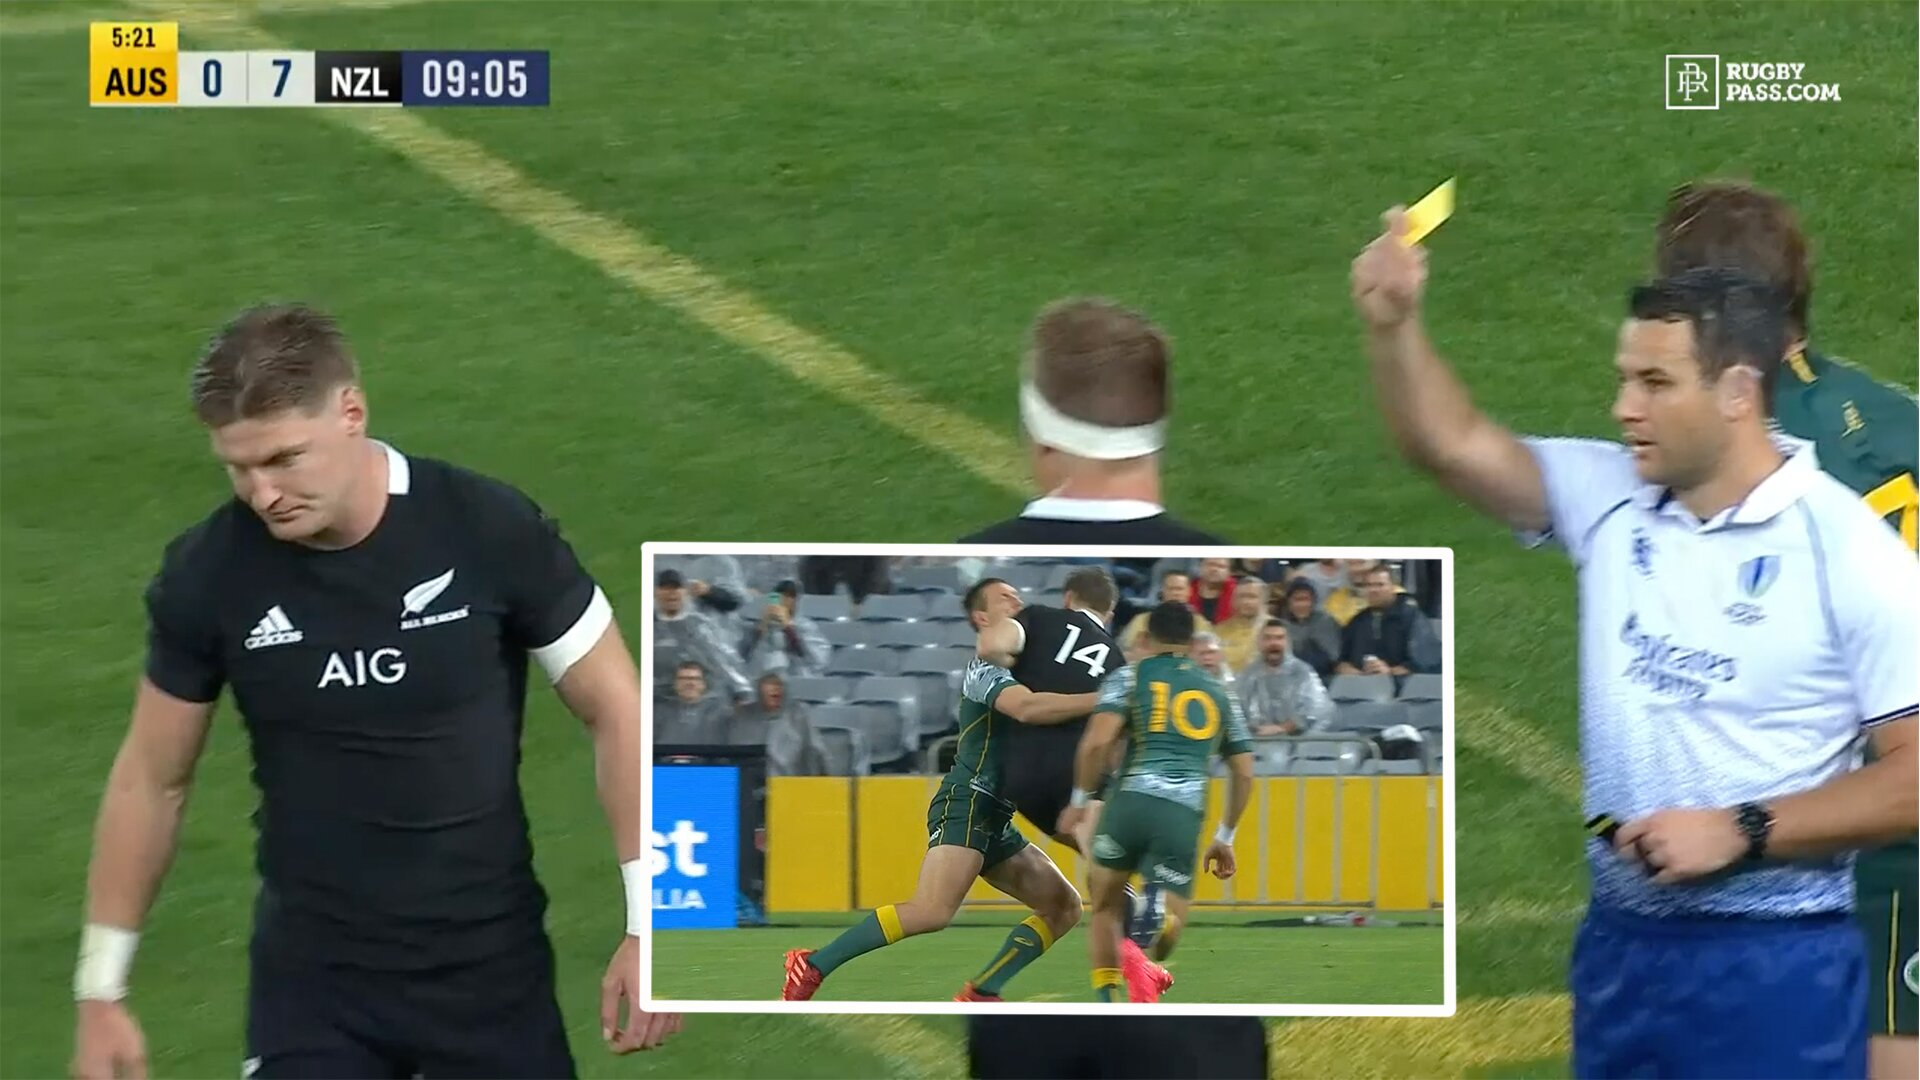 Jordie Barrett sent off for sickening 'shoulder charge' which clearly shows his elbow